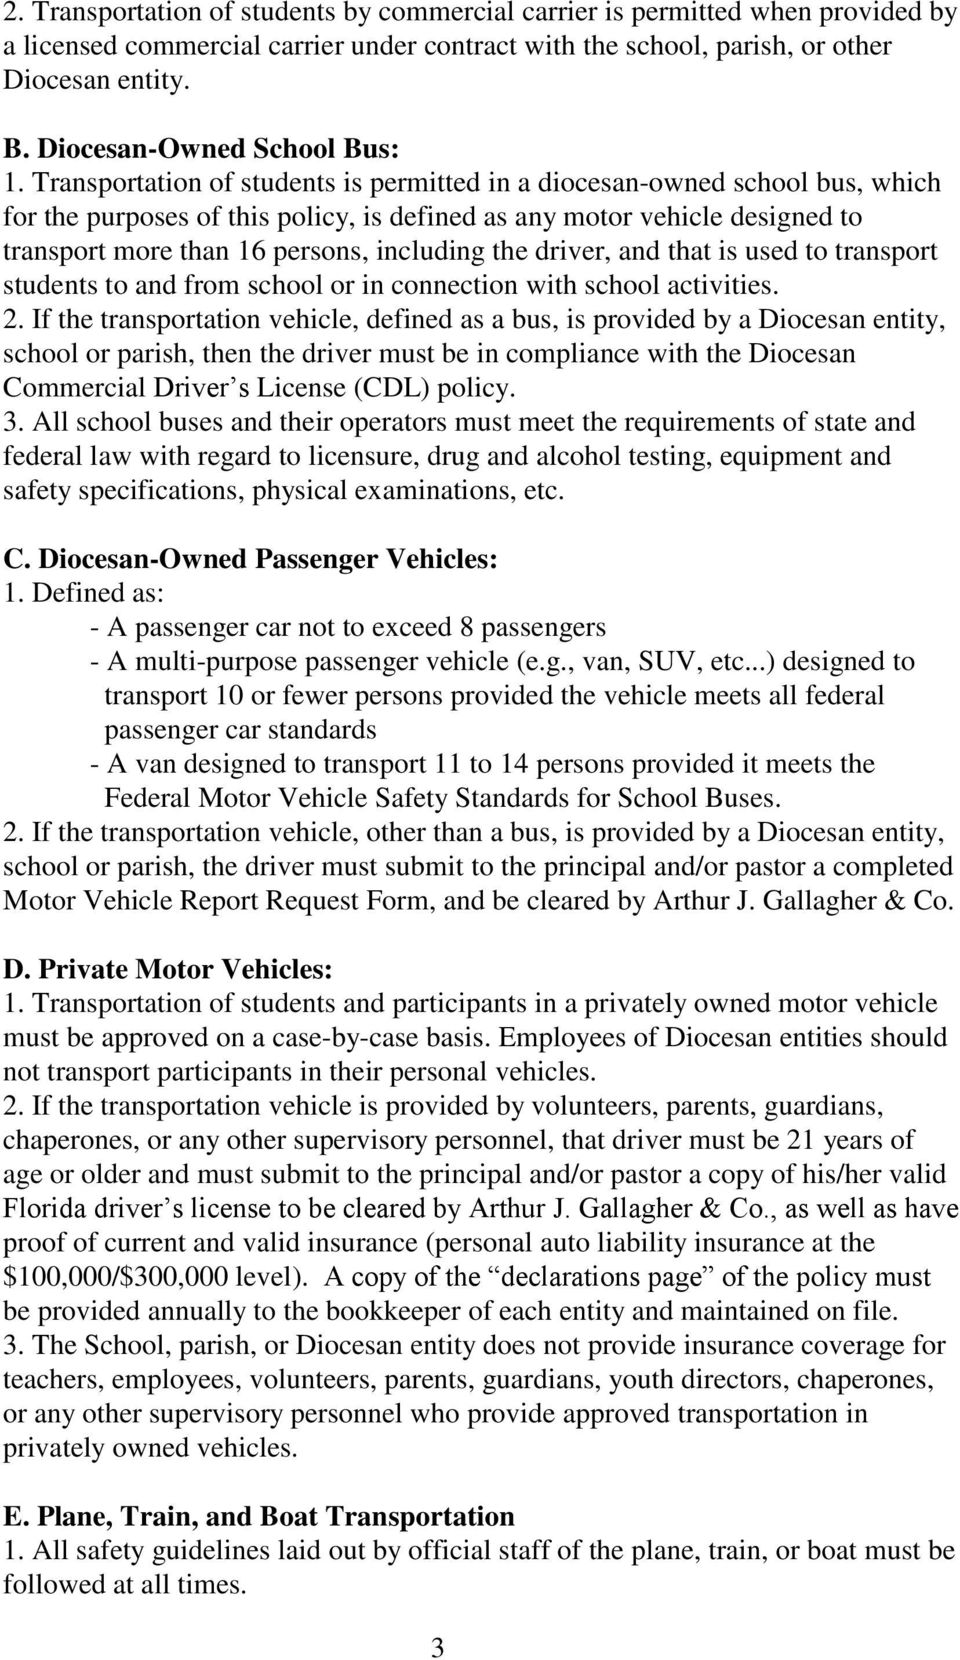 Transportation of students is permitted in a diocesan-owned school bus, which for the purposes of this policy, is defined as any motor vehicle designed to transport more than 16 persons, including